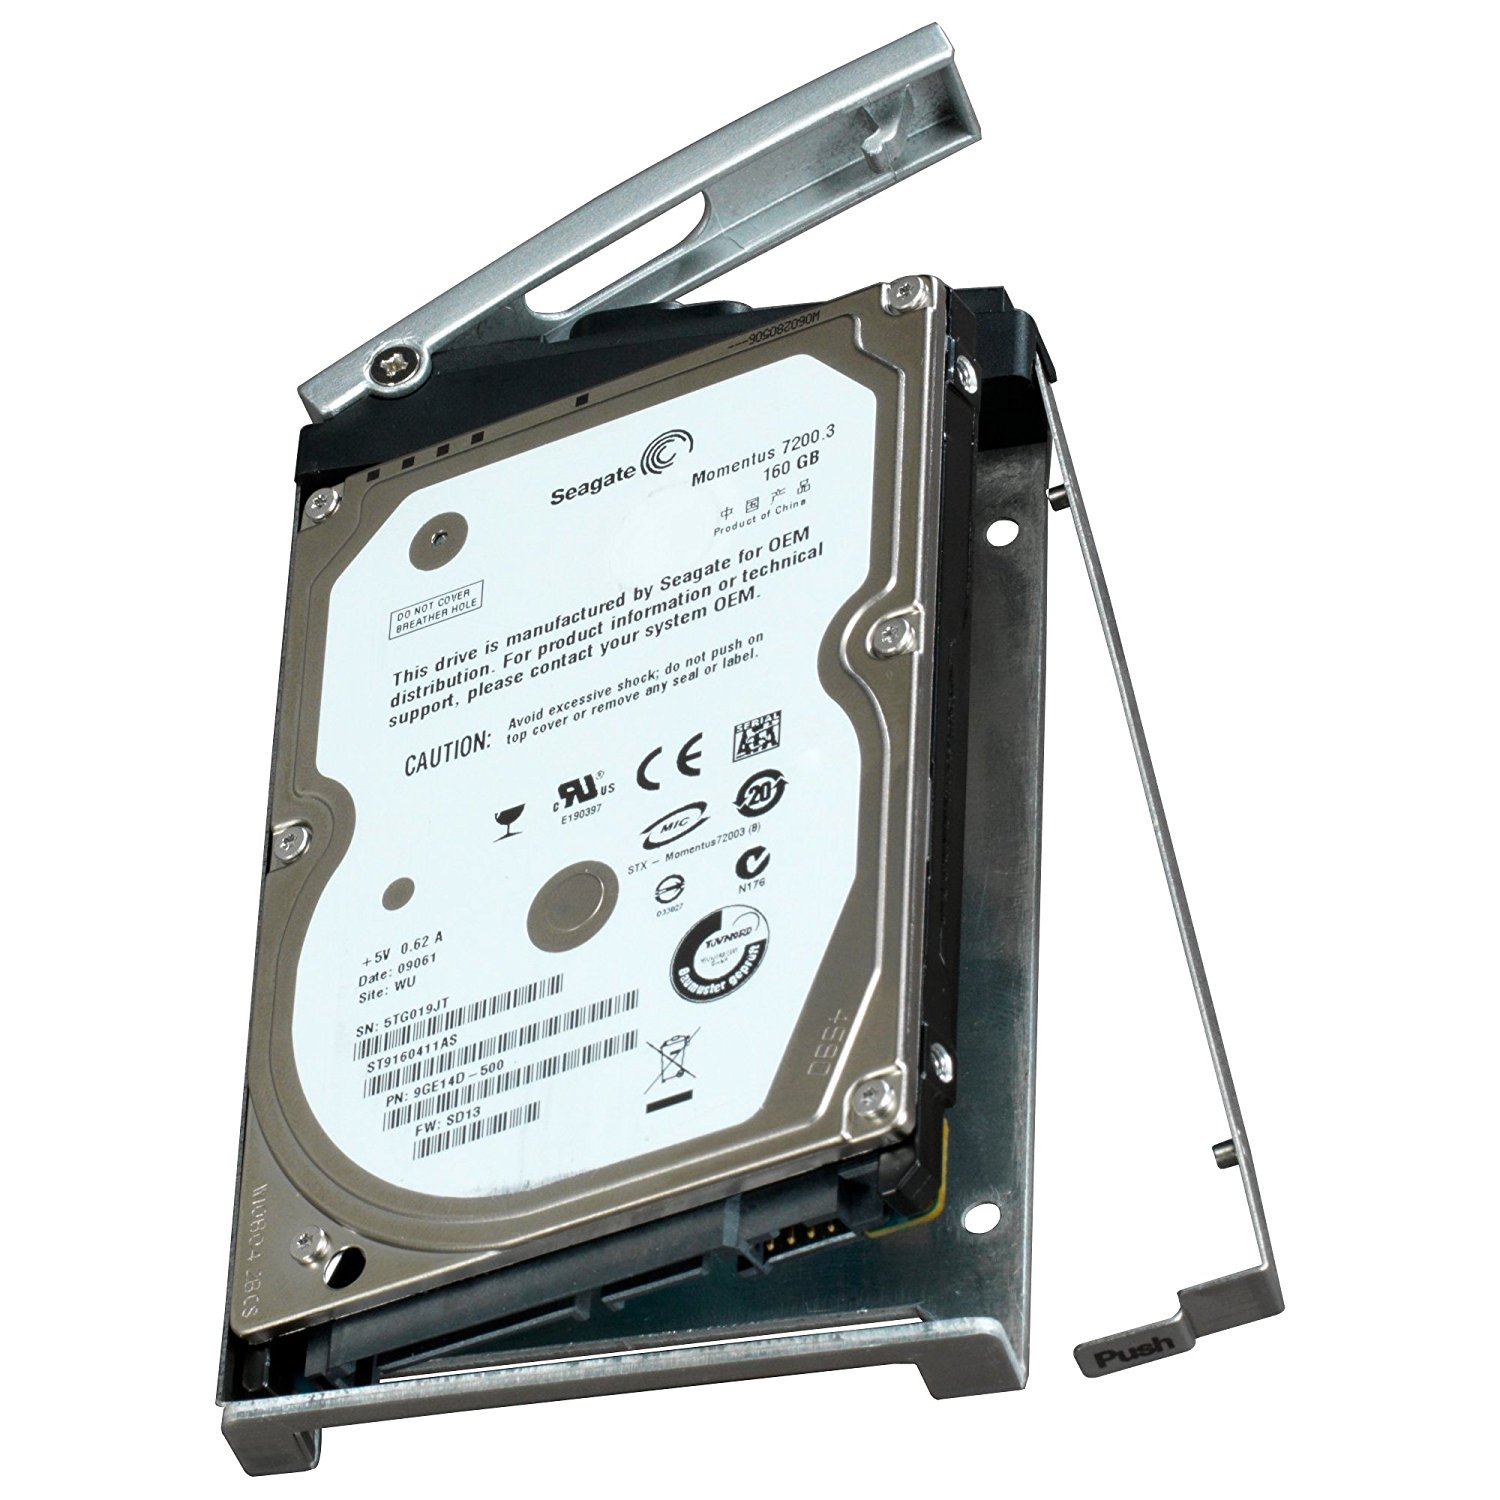 "Cru Acquisitions Group, Llc - Cru 36020-0000-0001 Drive Mount Kit For Hard Disk Drive ""Product Category: Kits/Mounting Kits"""